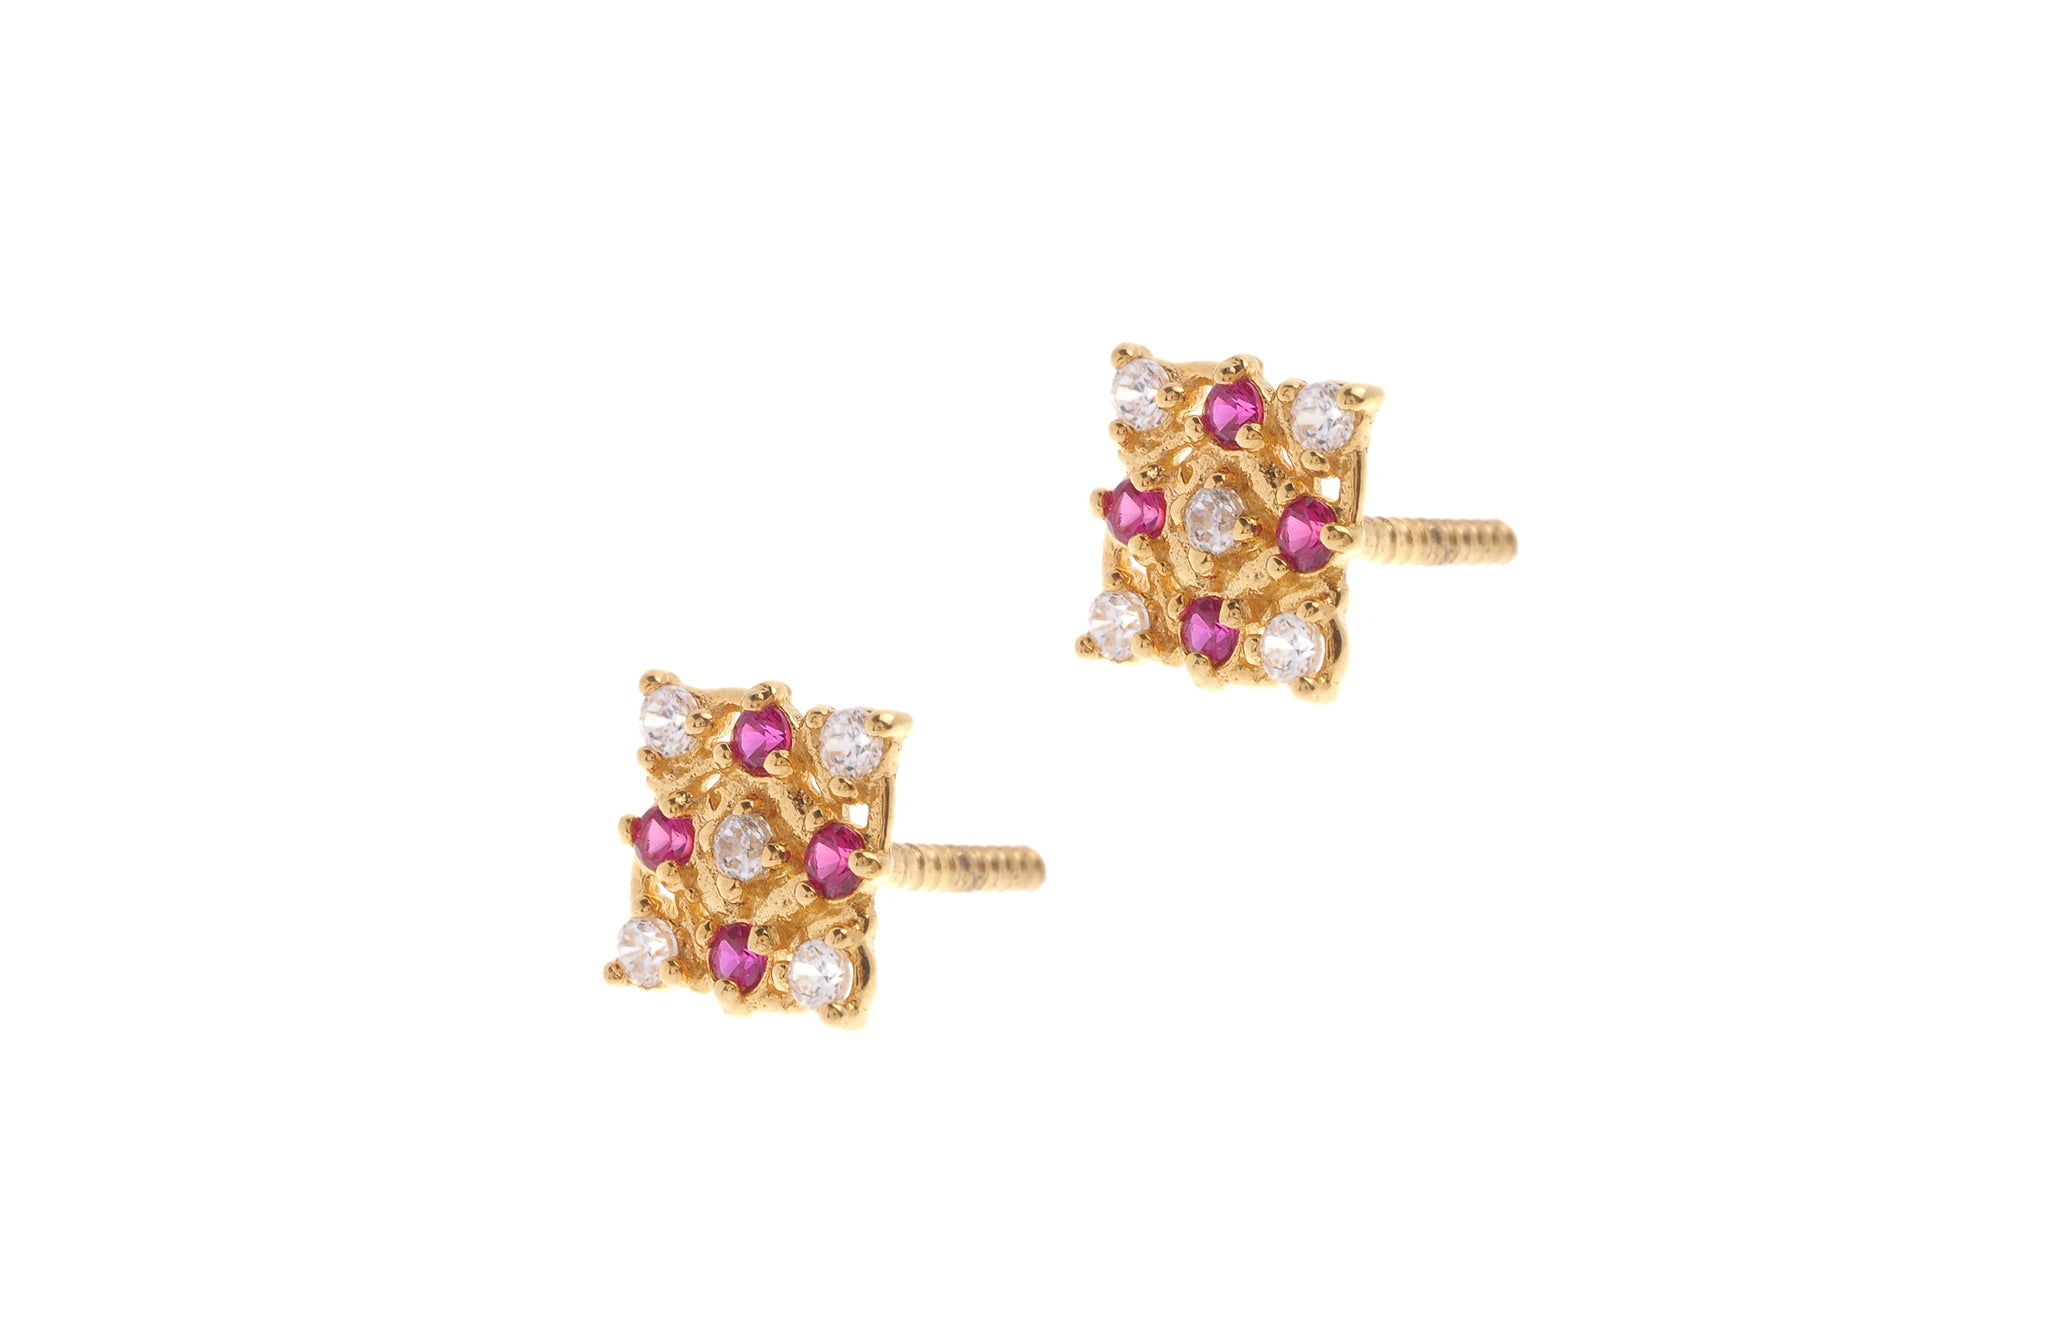 22ct Gold Stud Earrings Cubic Zirconia (White & Red) with Screw Backs (1.9g) E-6641